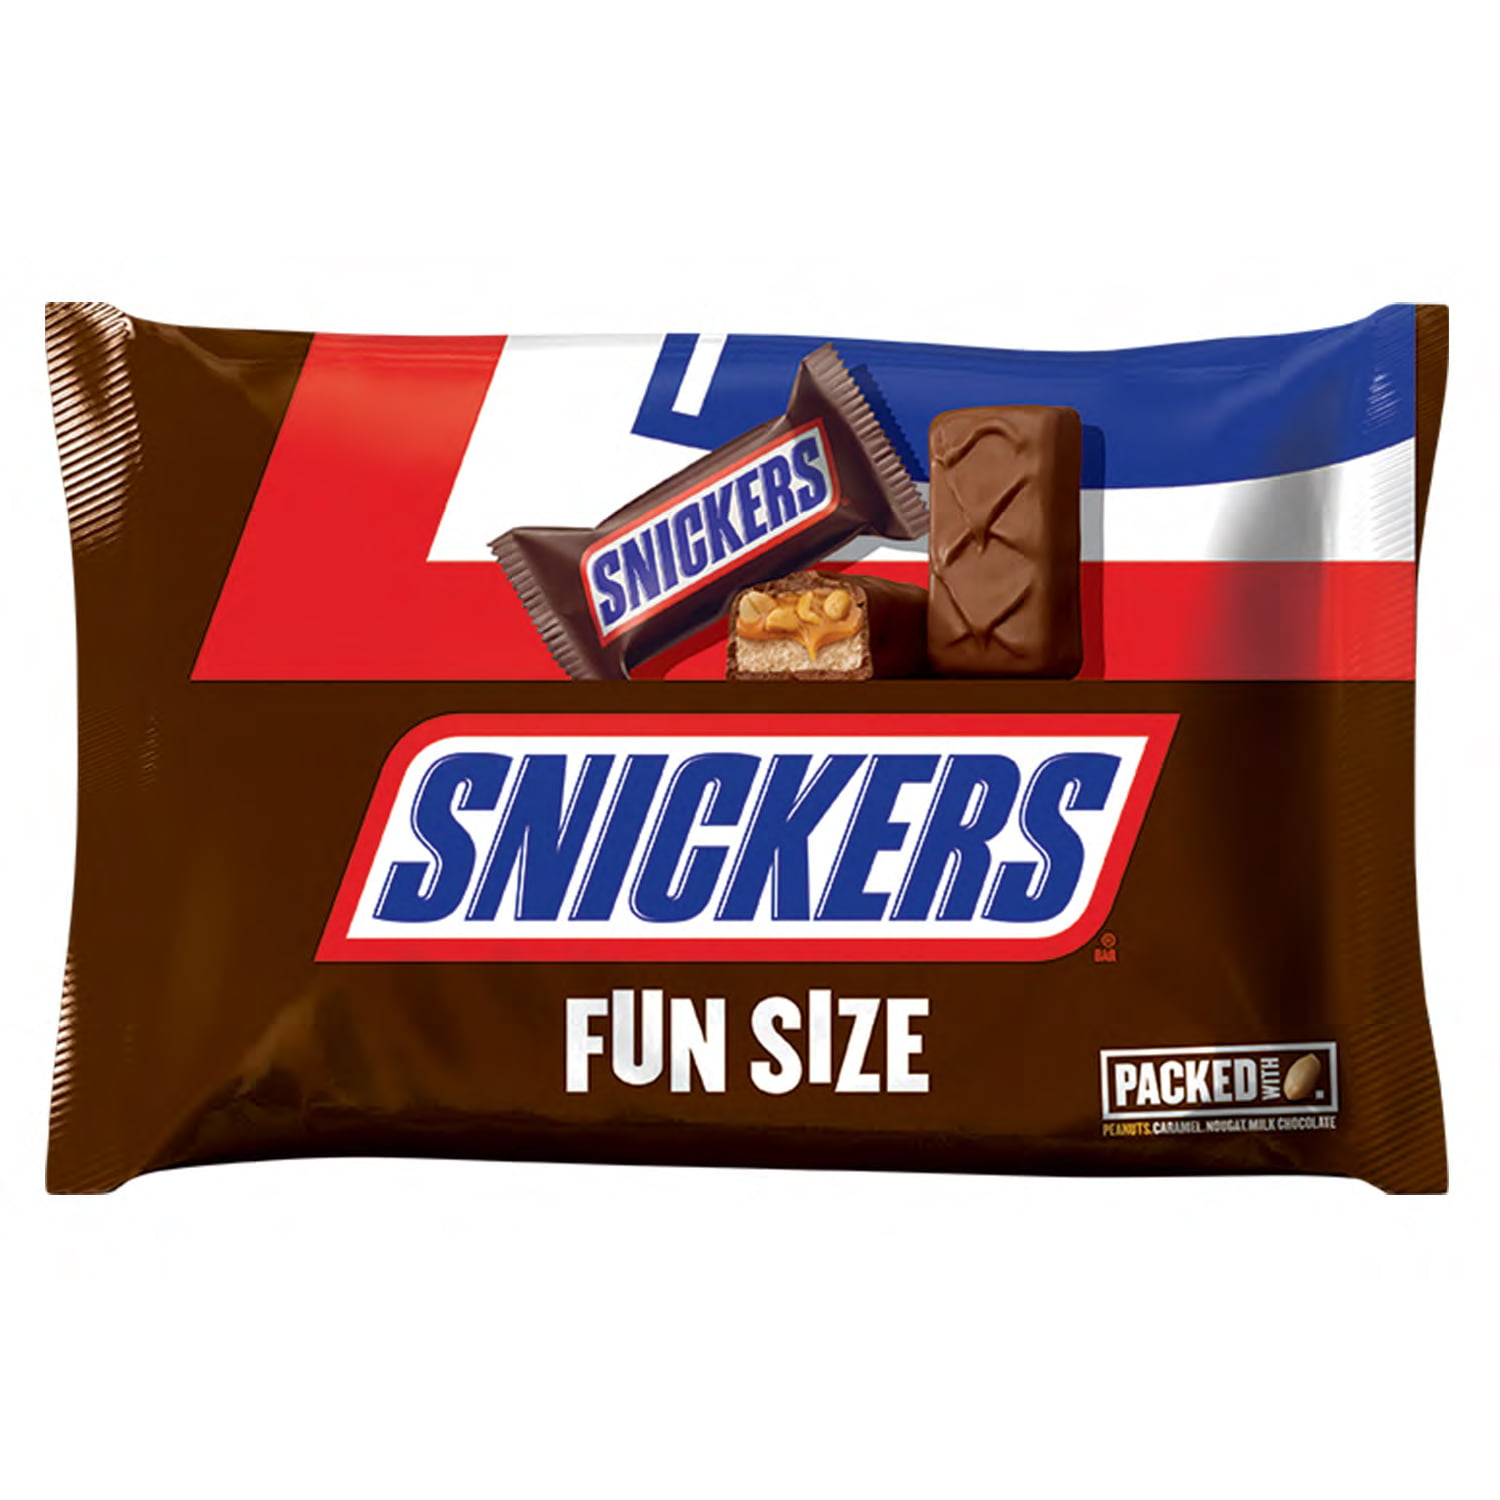 Snickers Fun Size Chocolate Candy Bars, 10.59 Oz.